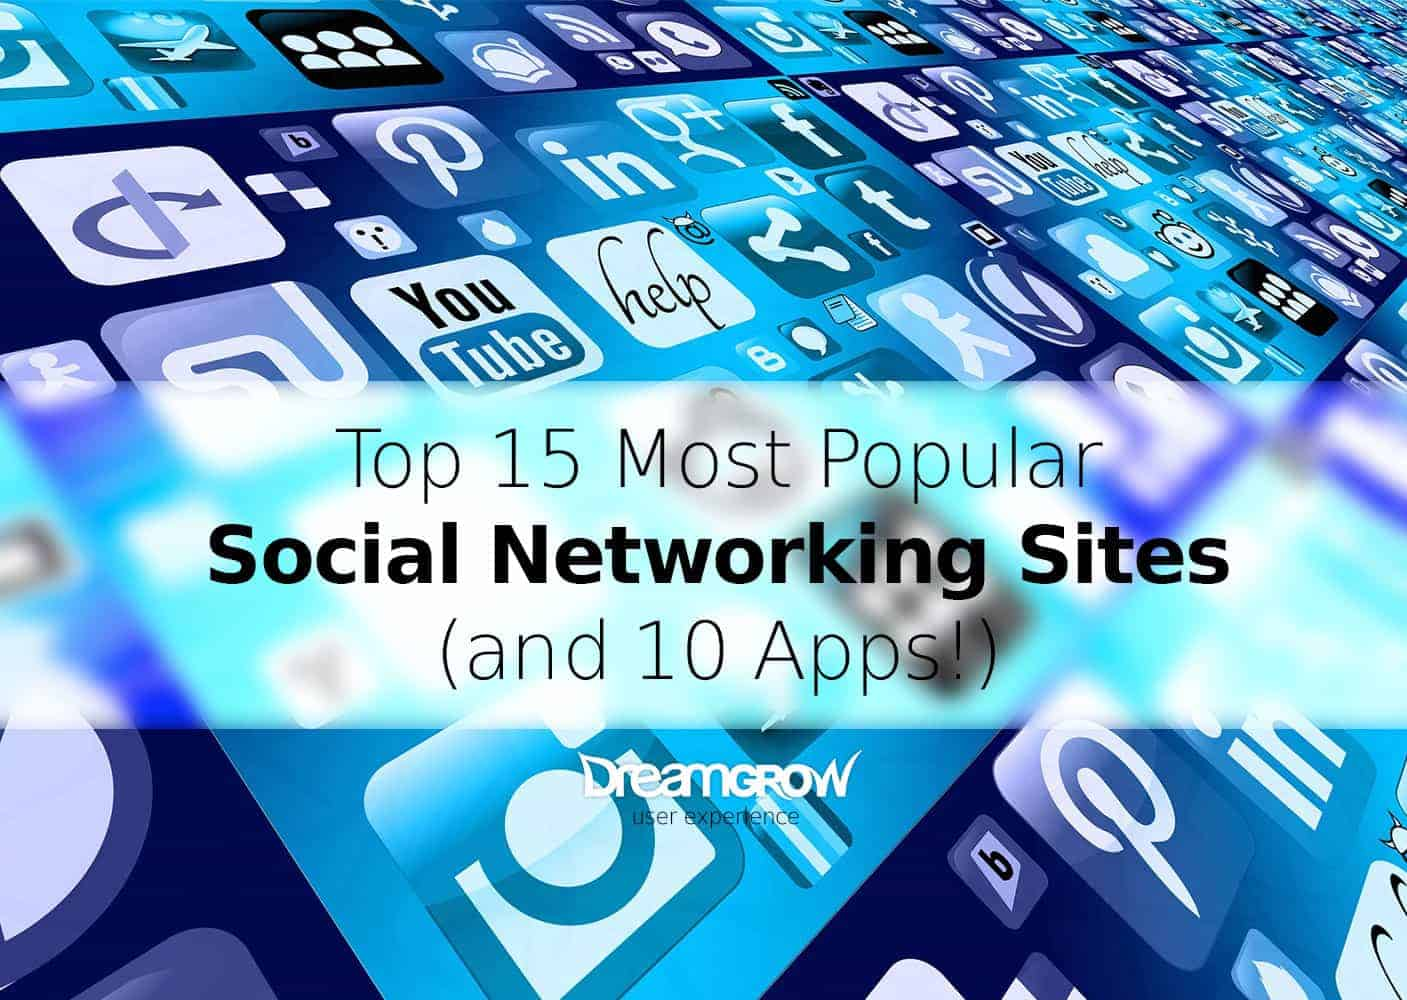 top-most-popular-social-networking-sites.jpg